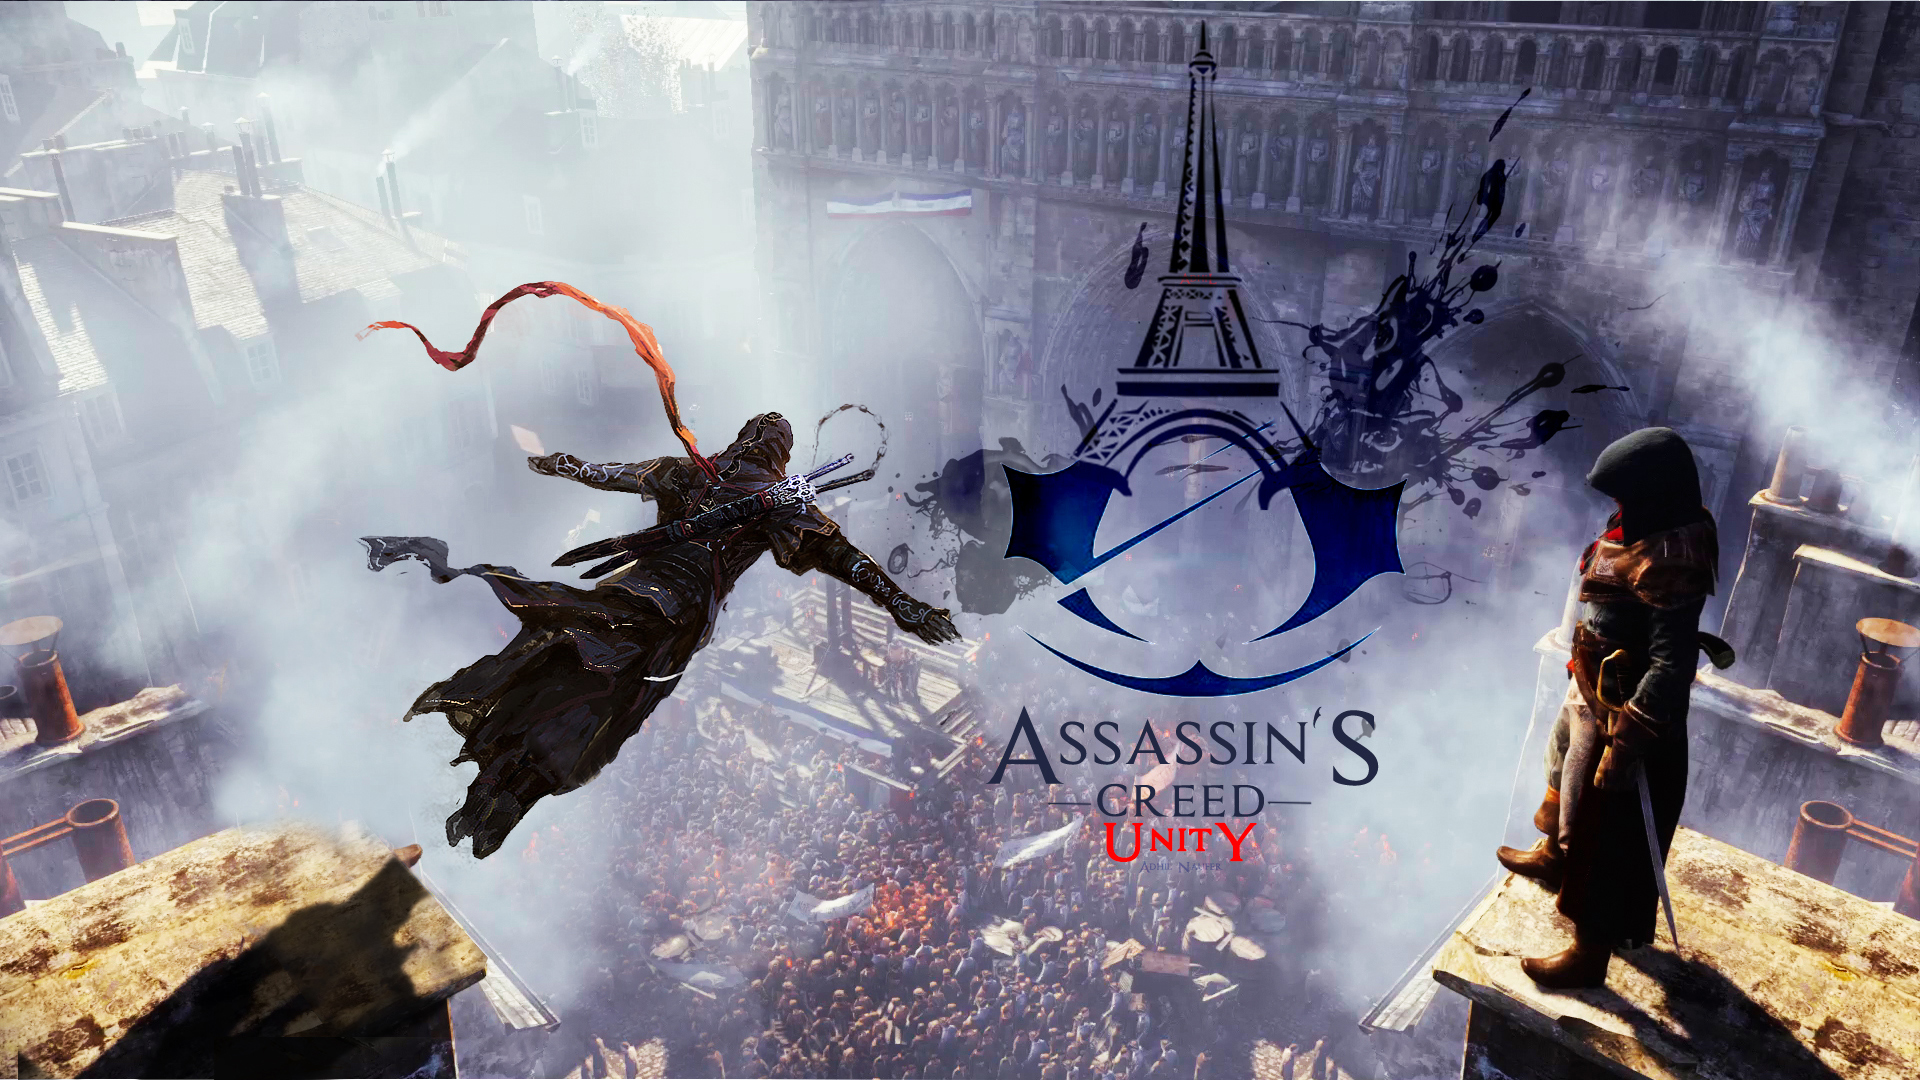 assassin s creed unity game hd 1920x1080 1080p wallpaper and 1920x1080